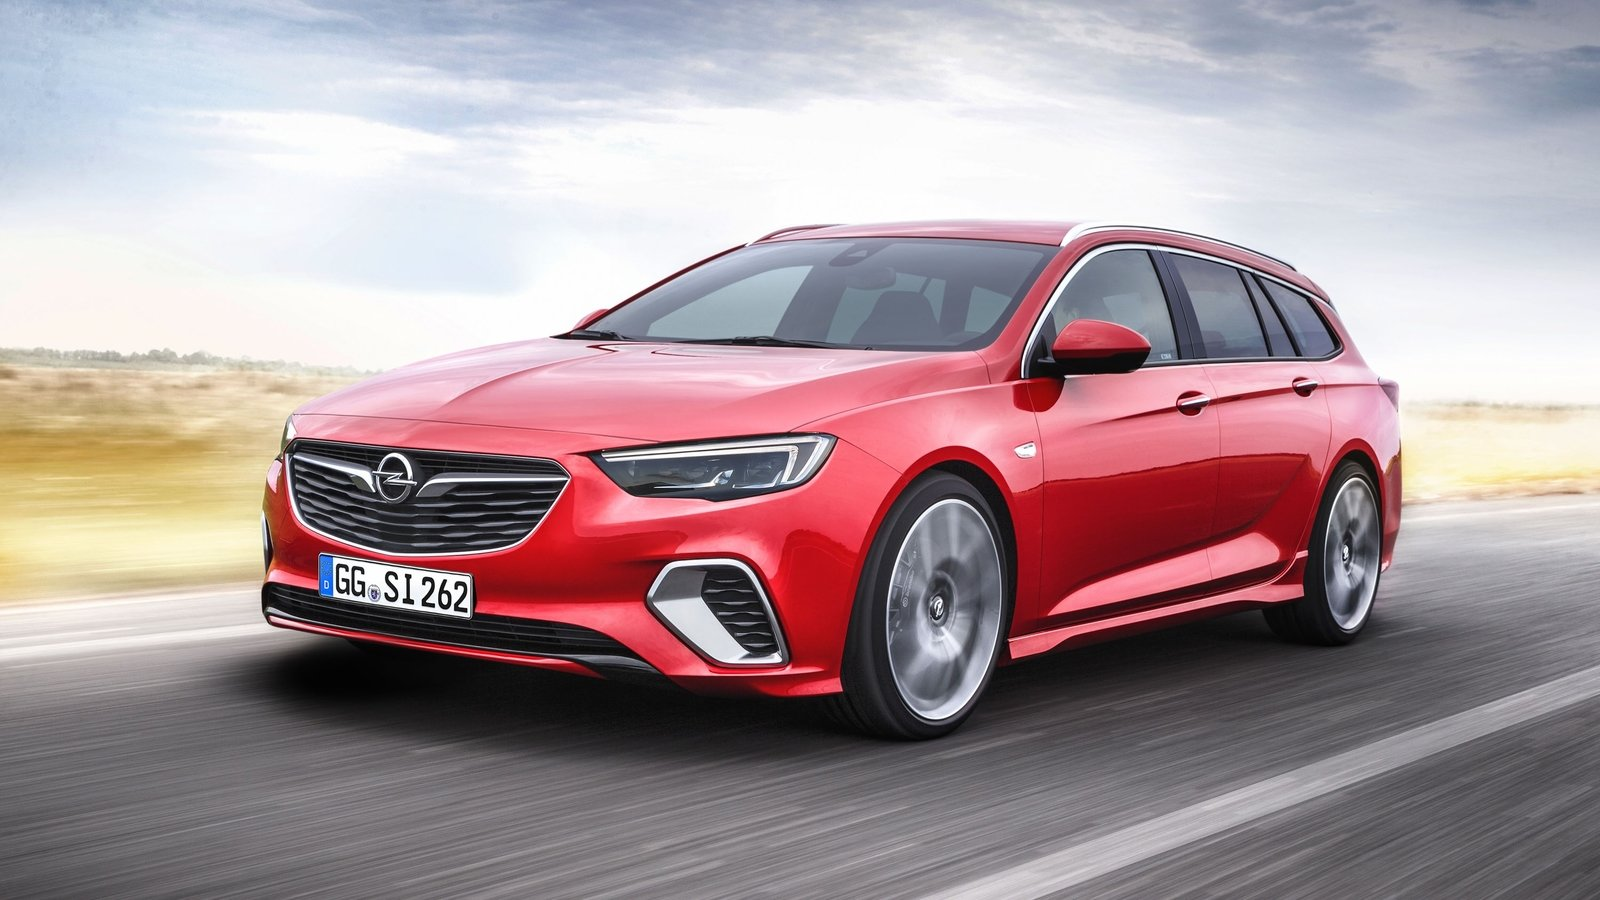 2018 opel insignia gsi sports tourer top speed. Black Bedroom Furniture Sets. Home Design Ideas